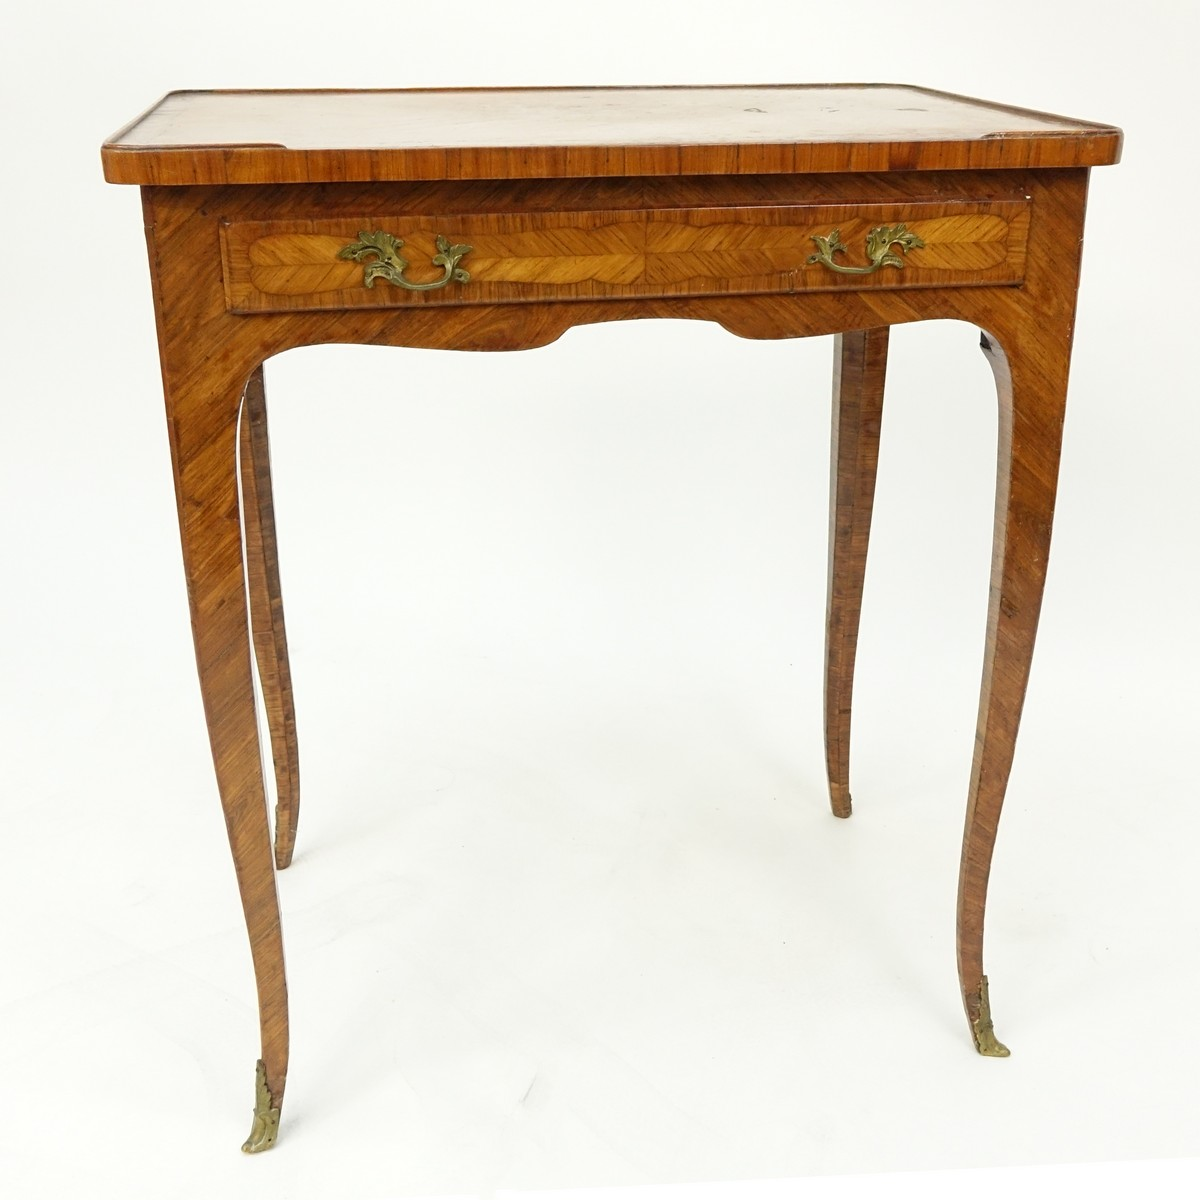 19th Century French Kingwood Inlaid Side Table with Gilt Bronze Mounts. Large sliding drawer and stands on tapering cabriole legs.